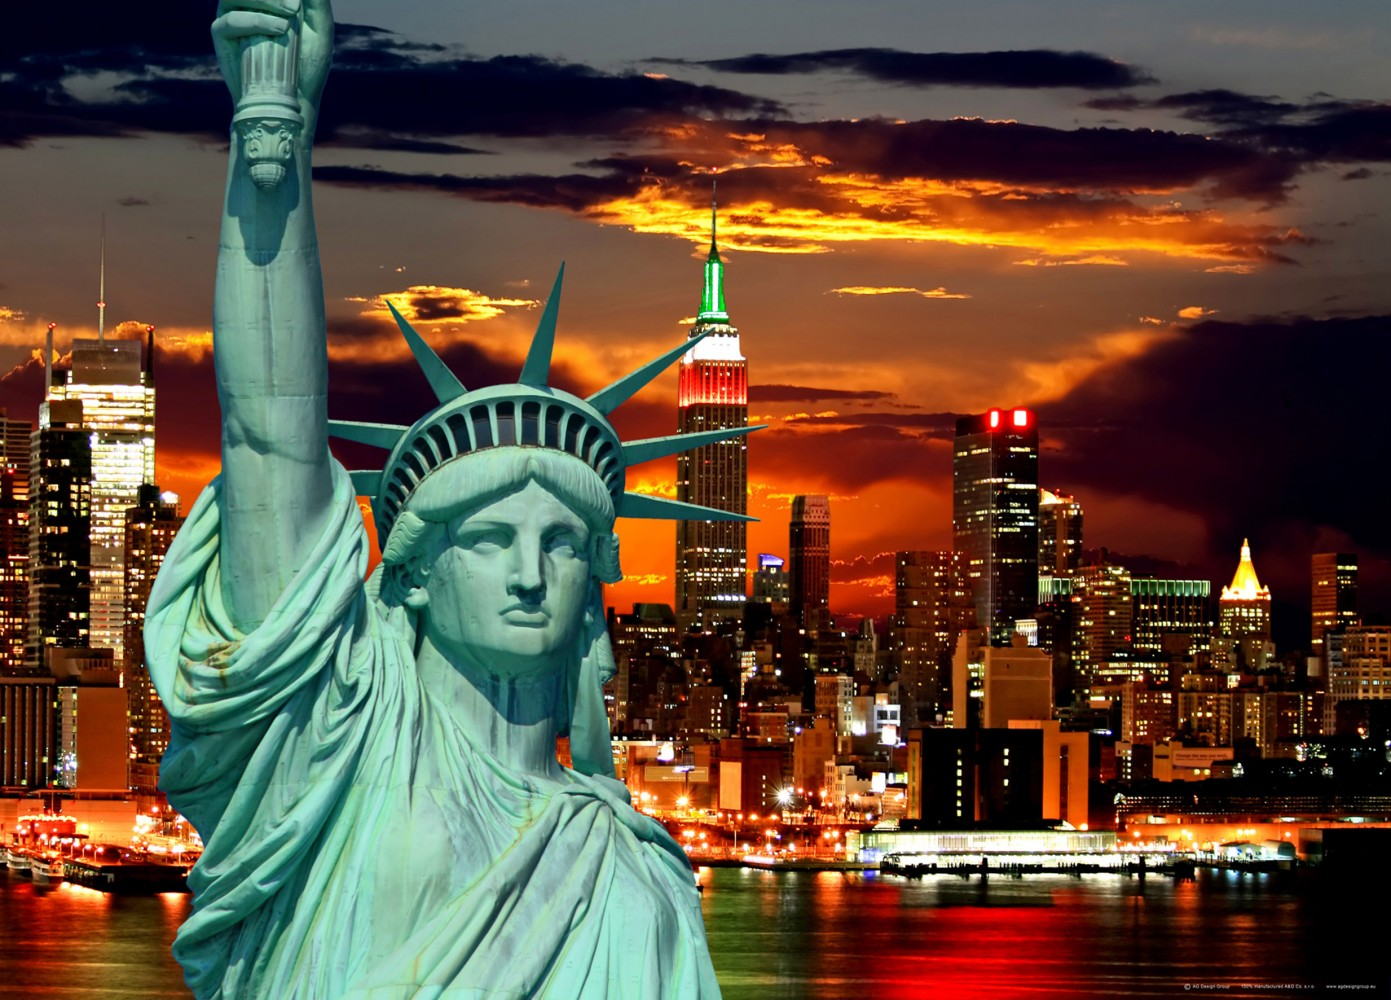 XXL Poster Wall Mural Wallpaper Statue Of Liberty New York Skyline Photo  160 Cm X 115 Cm / 1.75 Yd X 1.26 Yd Part 92